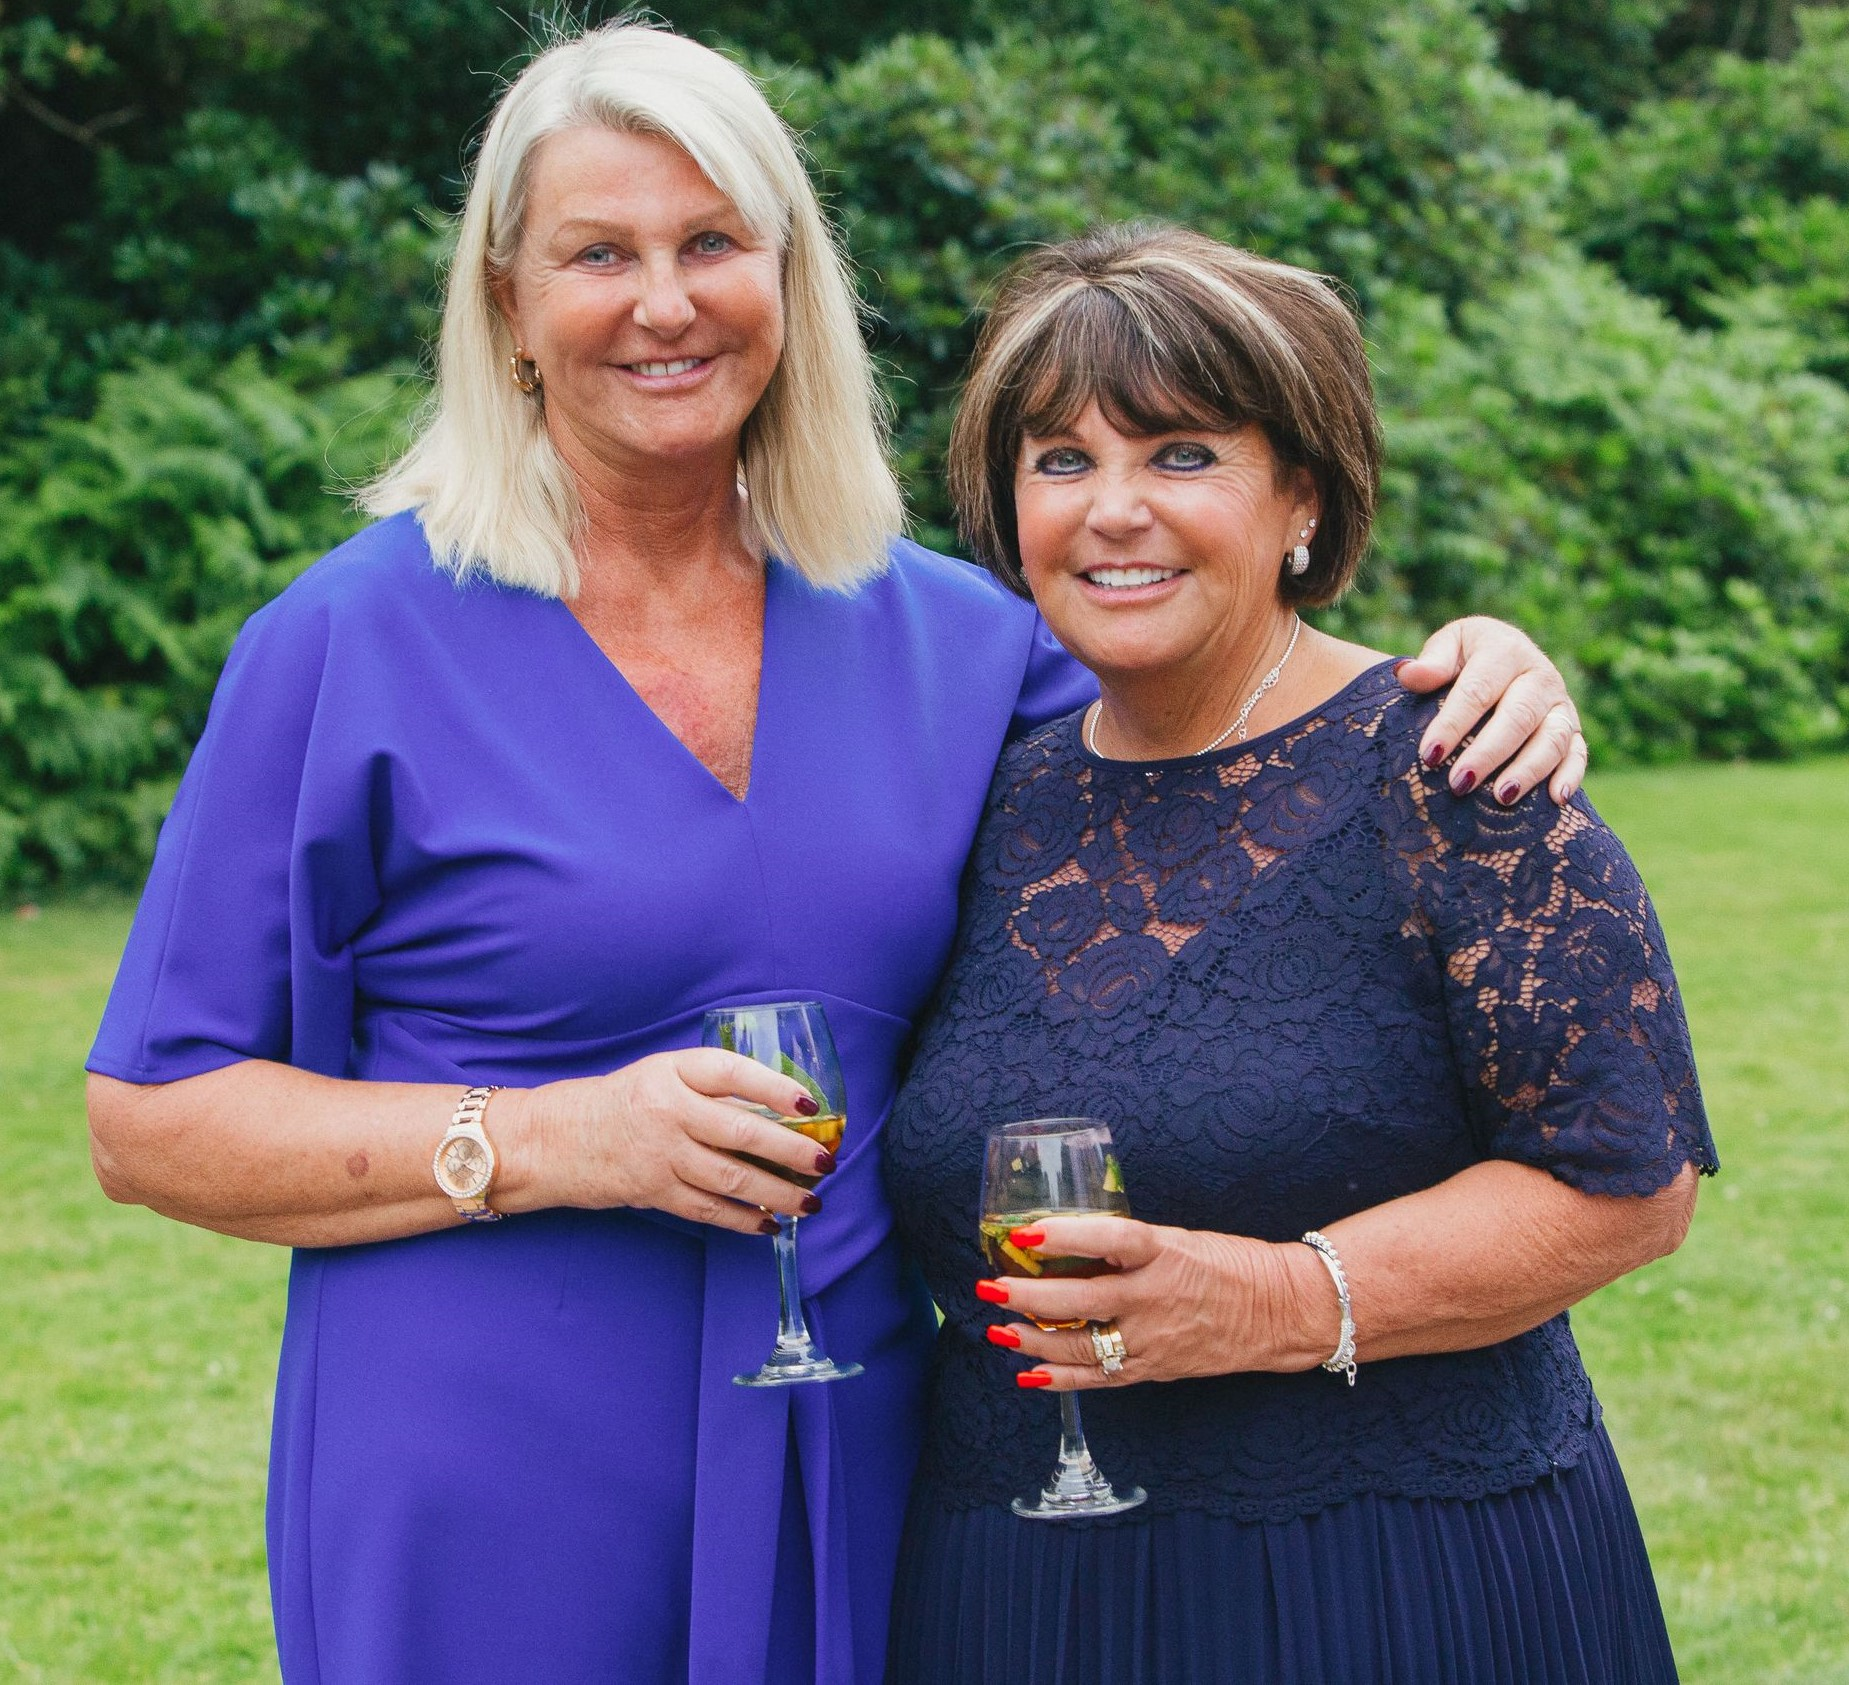 Maureen and Judy have just celebrated 30 years as successful proprietors of St. Andrews Nursery